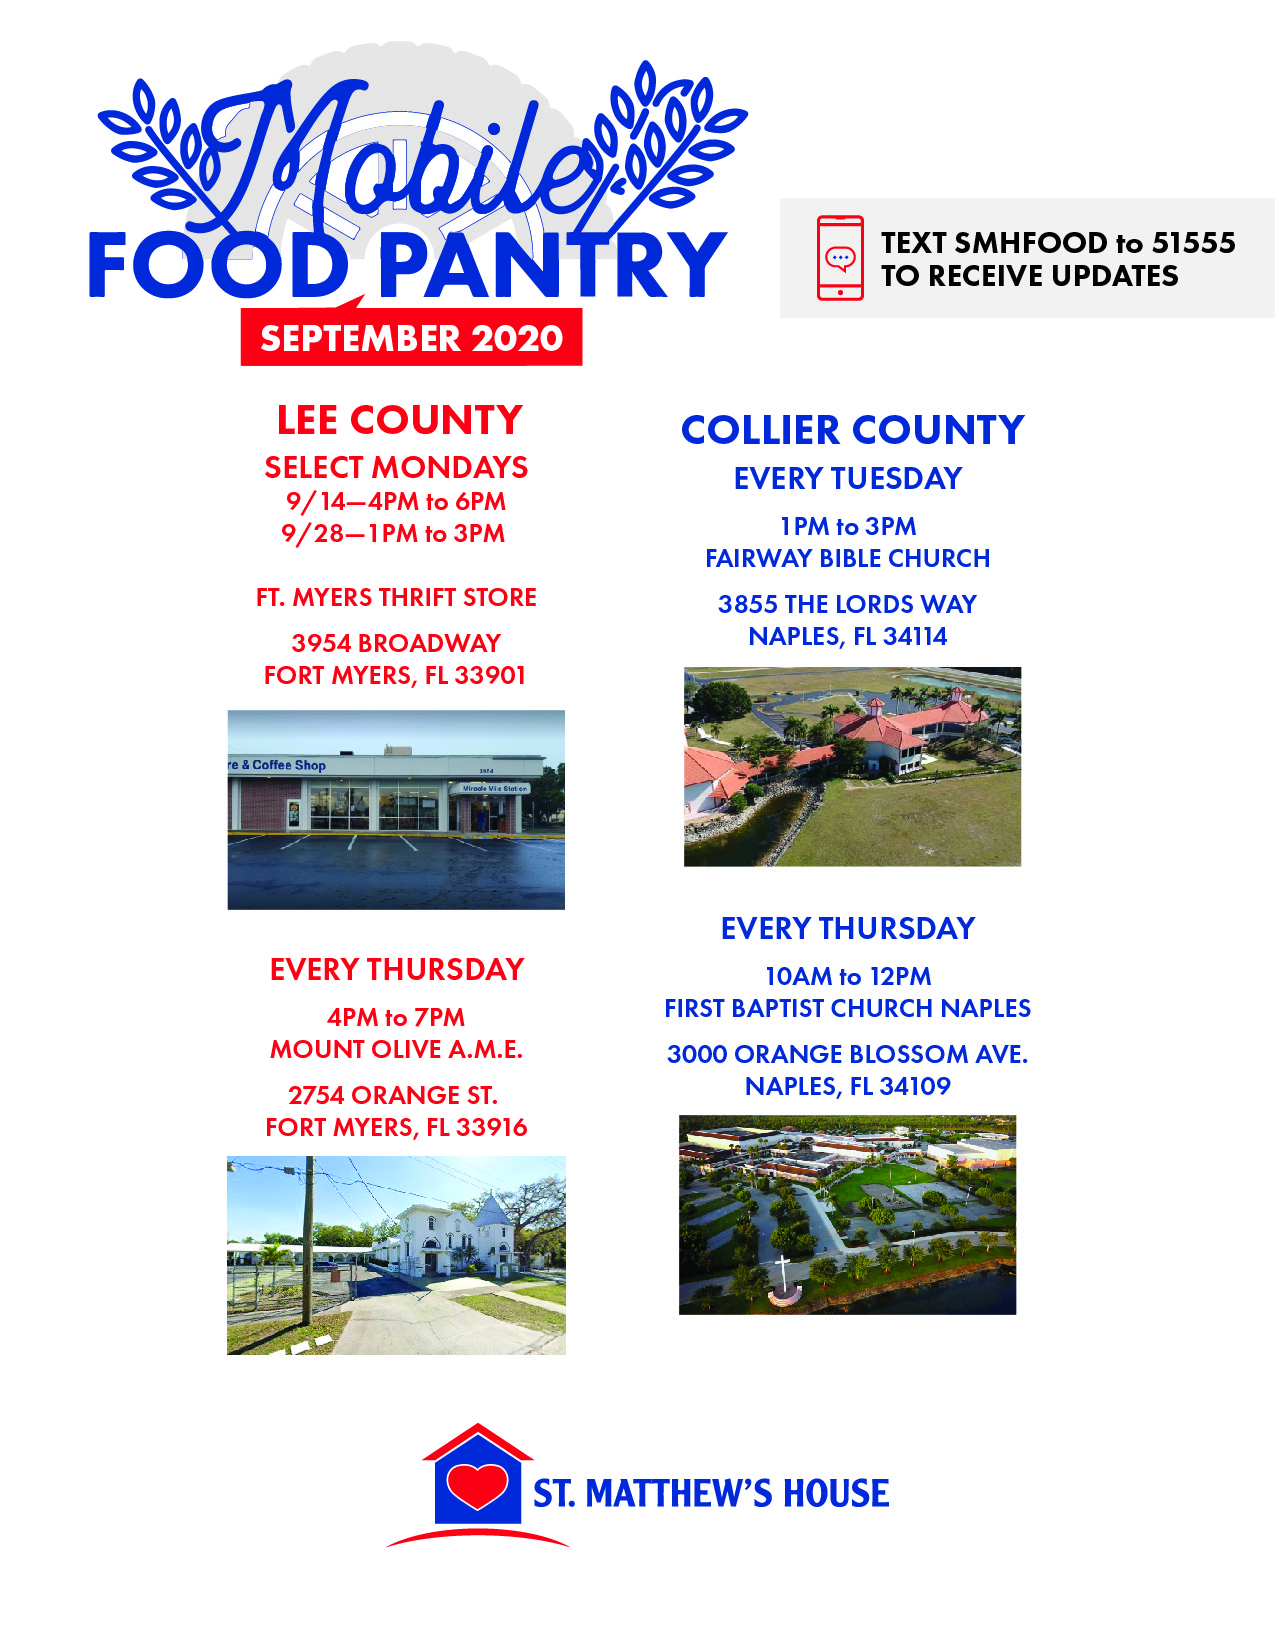 St Matthew S House Mobile Food Pantry Distribution For The Week Of Sept 14